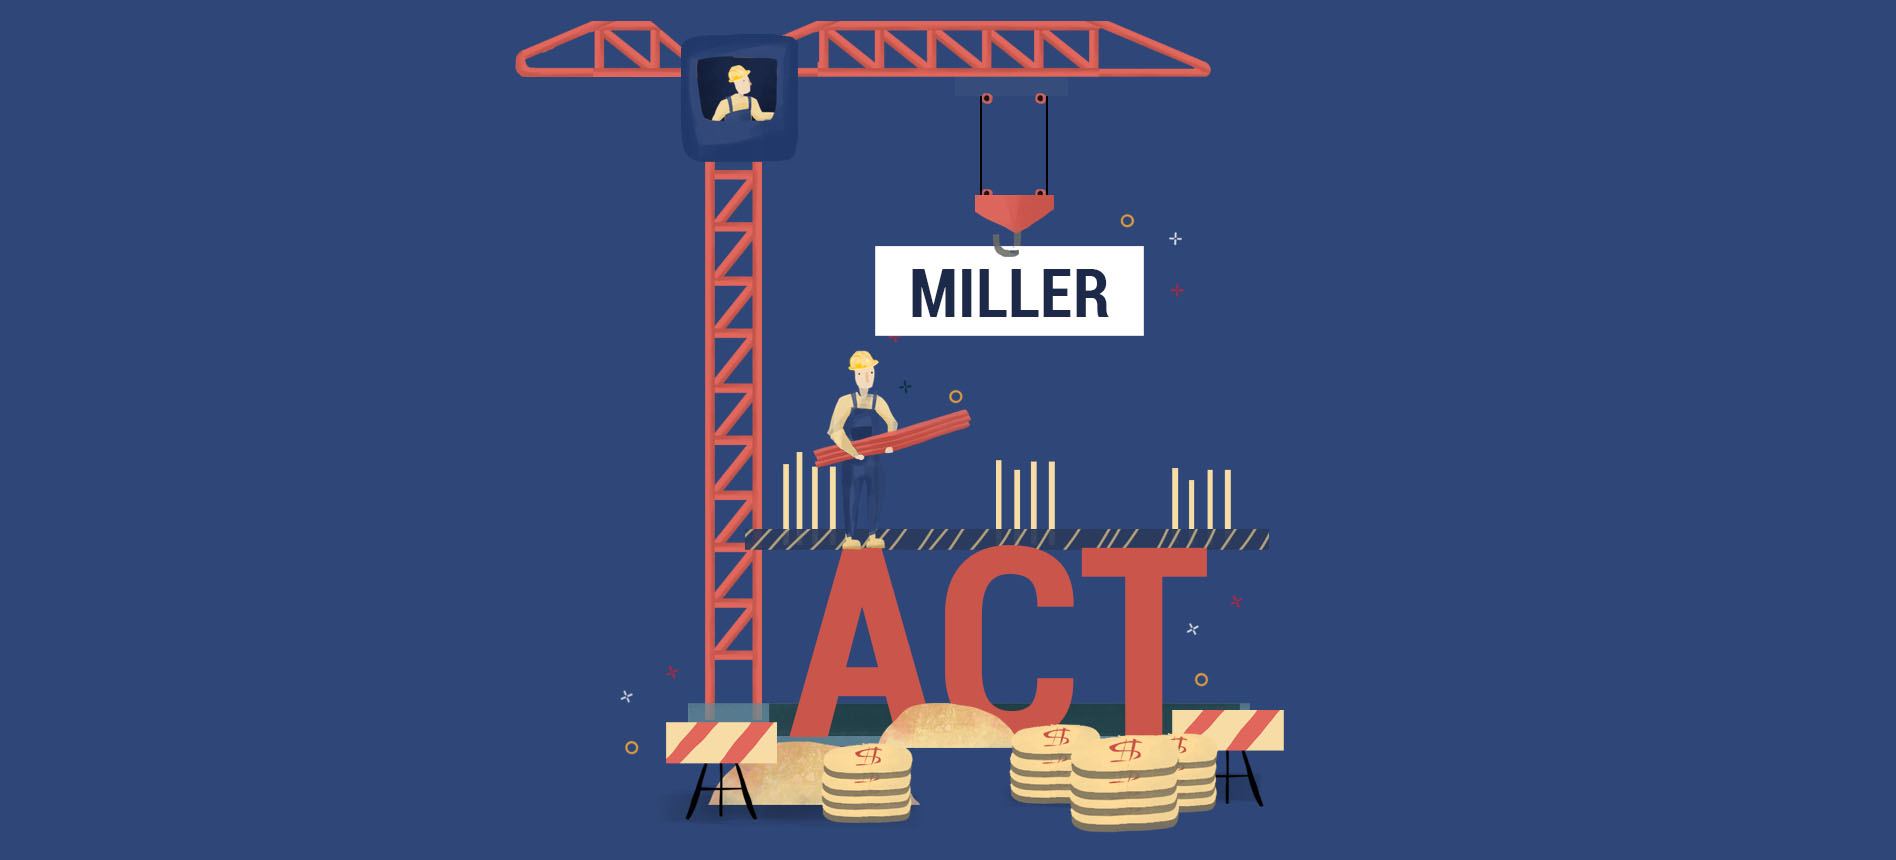 The Miller Act